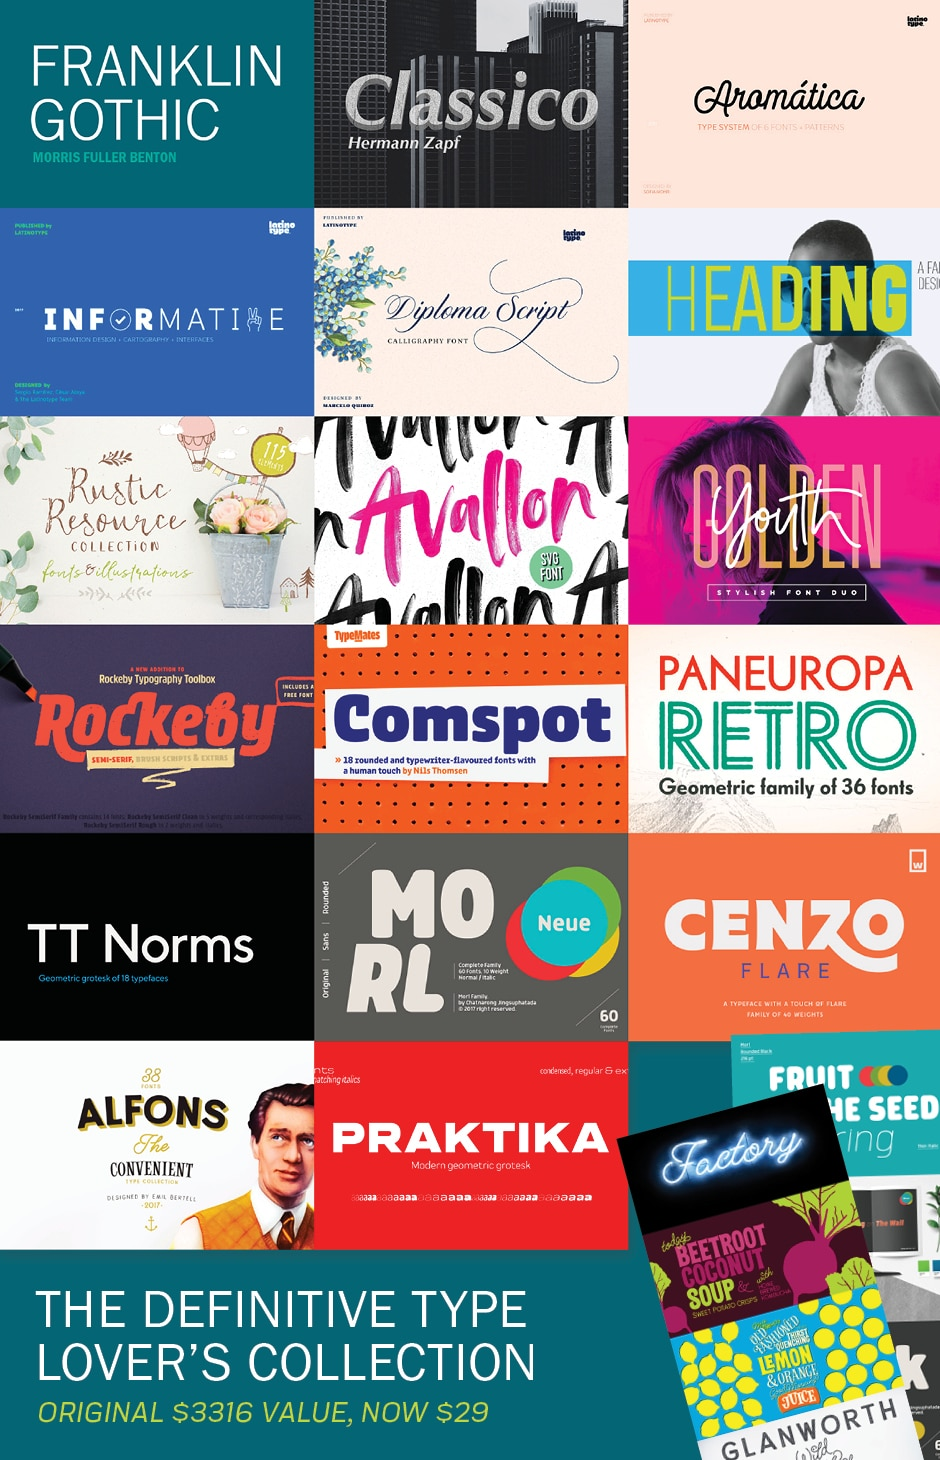 The Definitive Type Lover's Collection - JUST $29